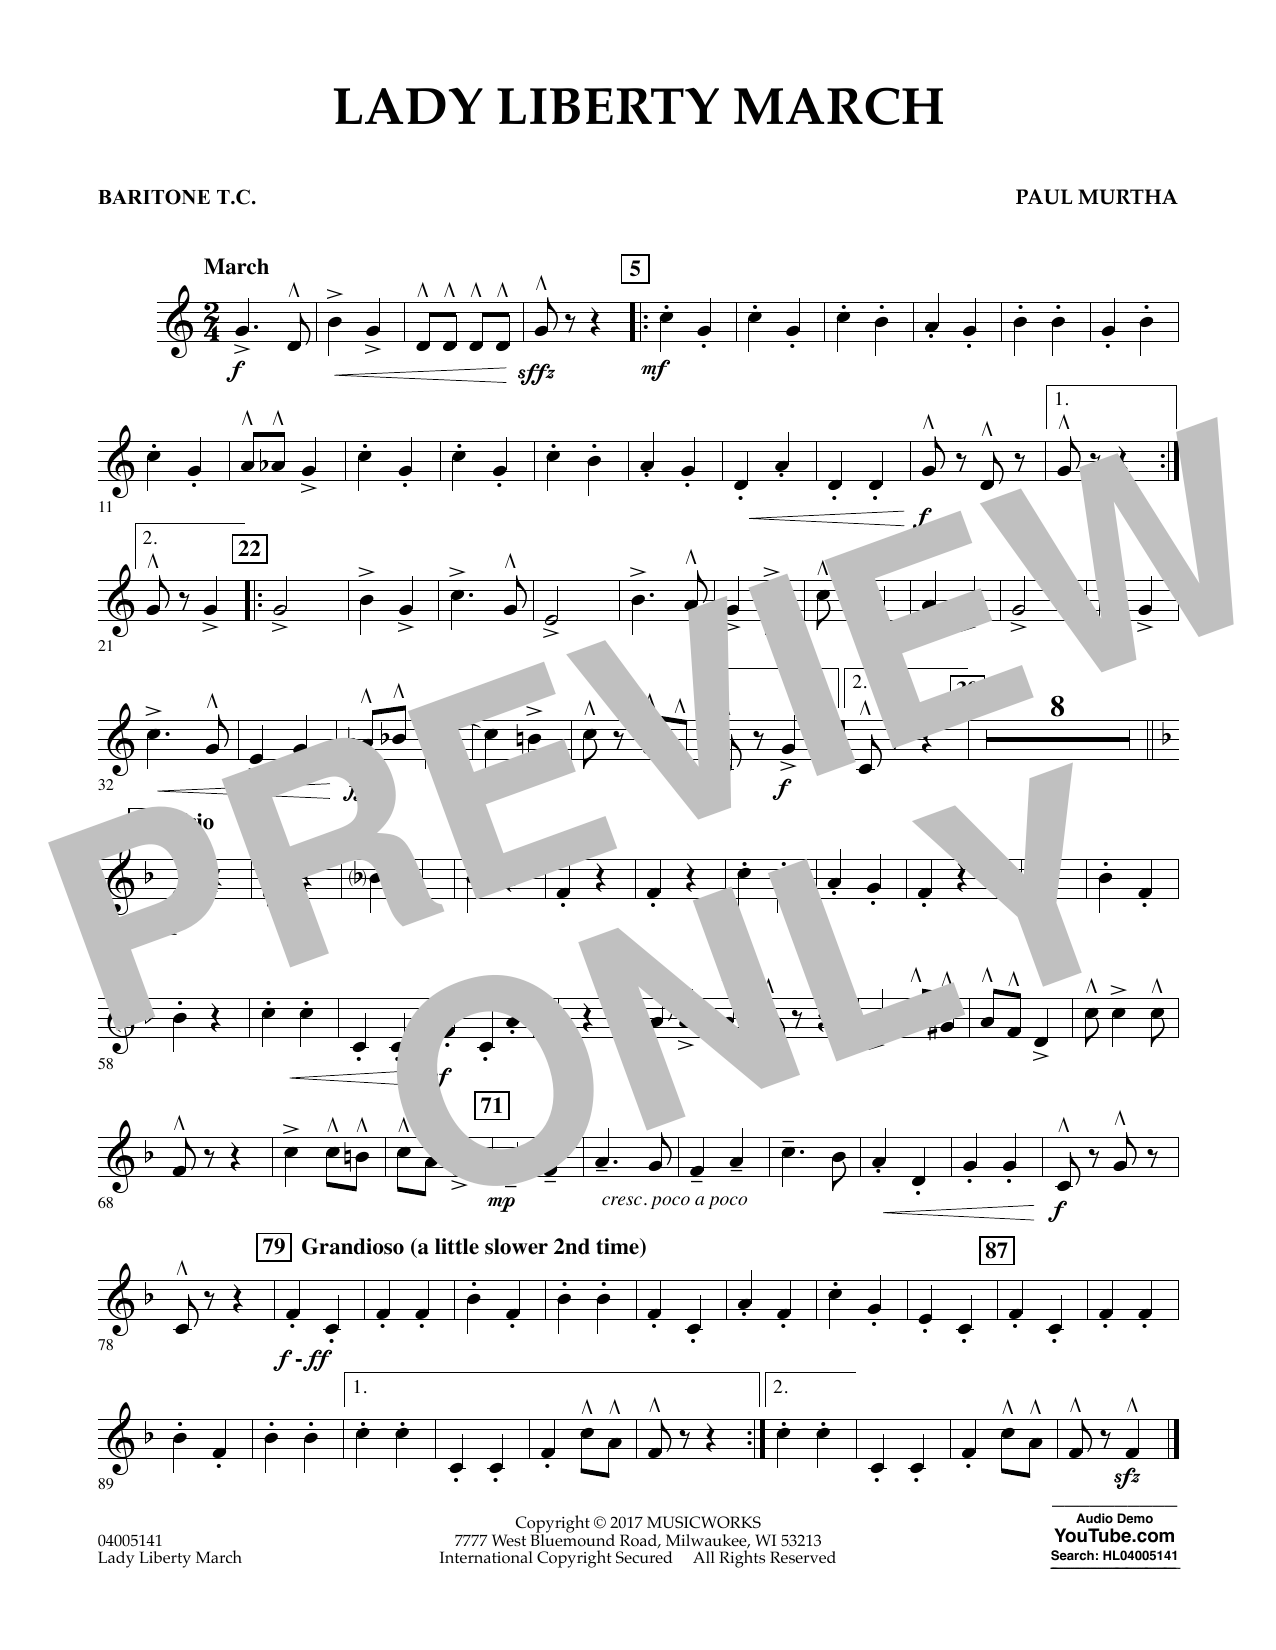 Paul Murtha Lady Liberty March - Baritone T.C. sheet music notes and chords. Download Printable PDF.